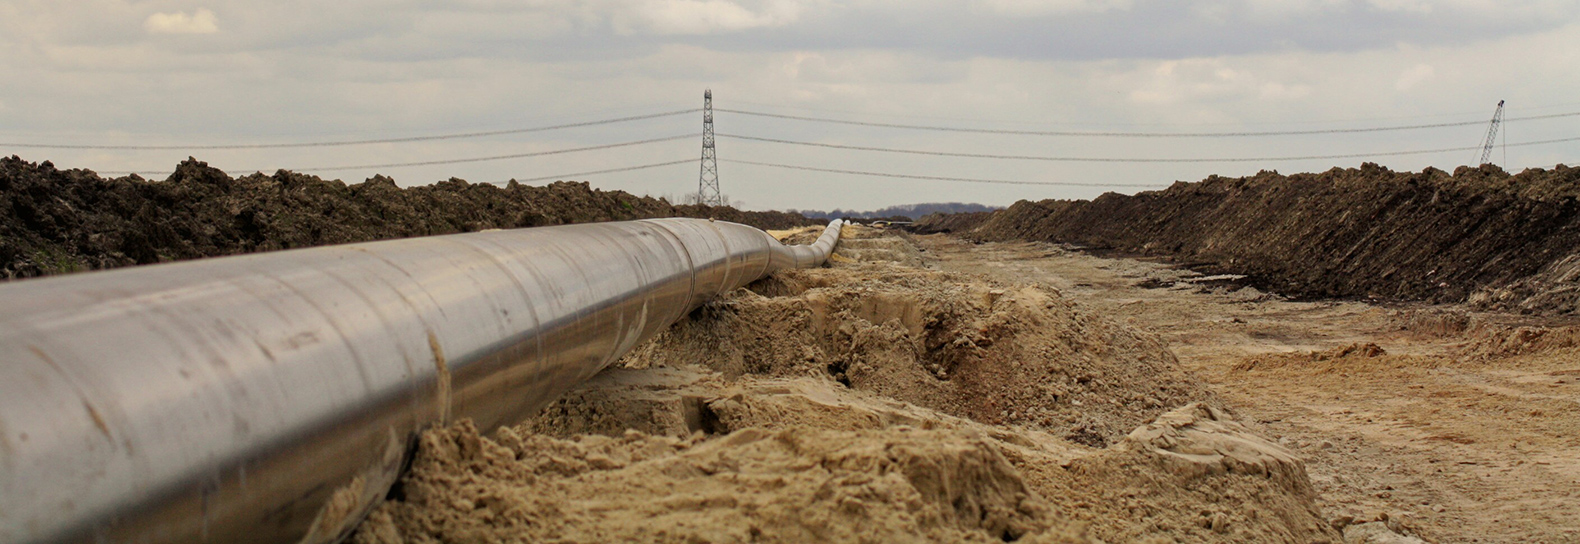 Pipeline breach spills 53,000 gallons of oil on First Nations land